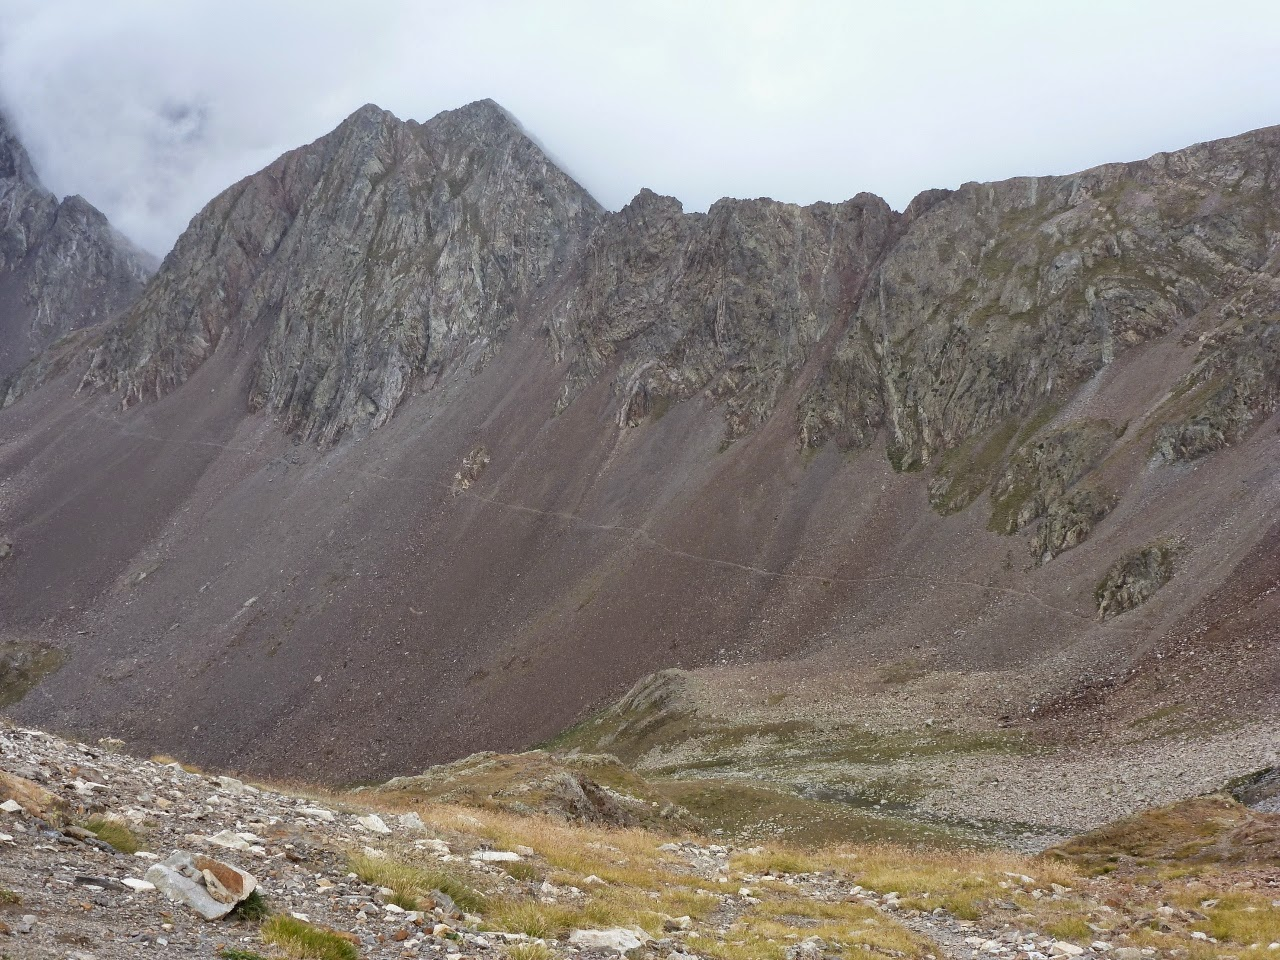 The scree path viewed from the Col des Mulets